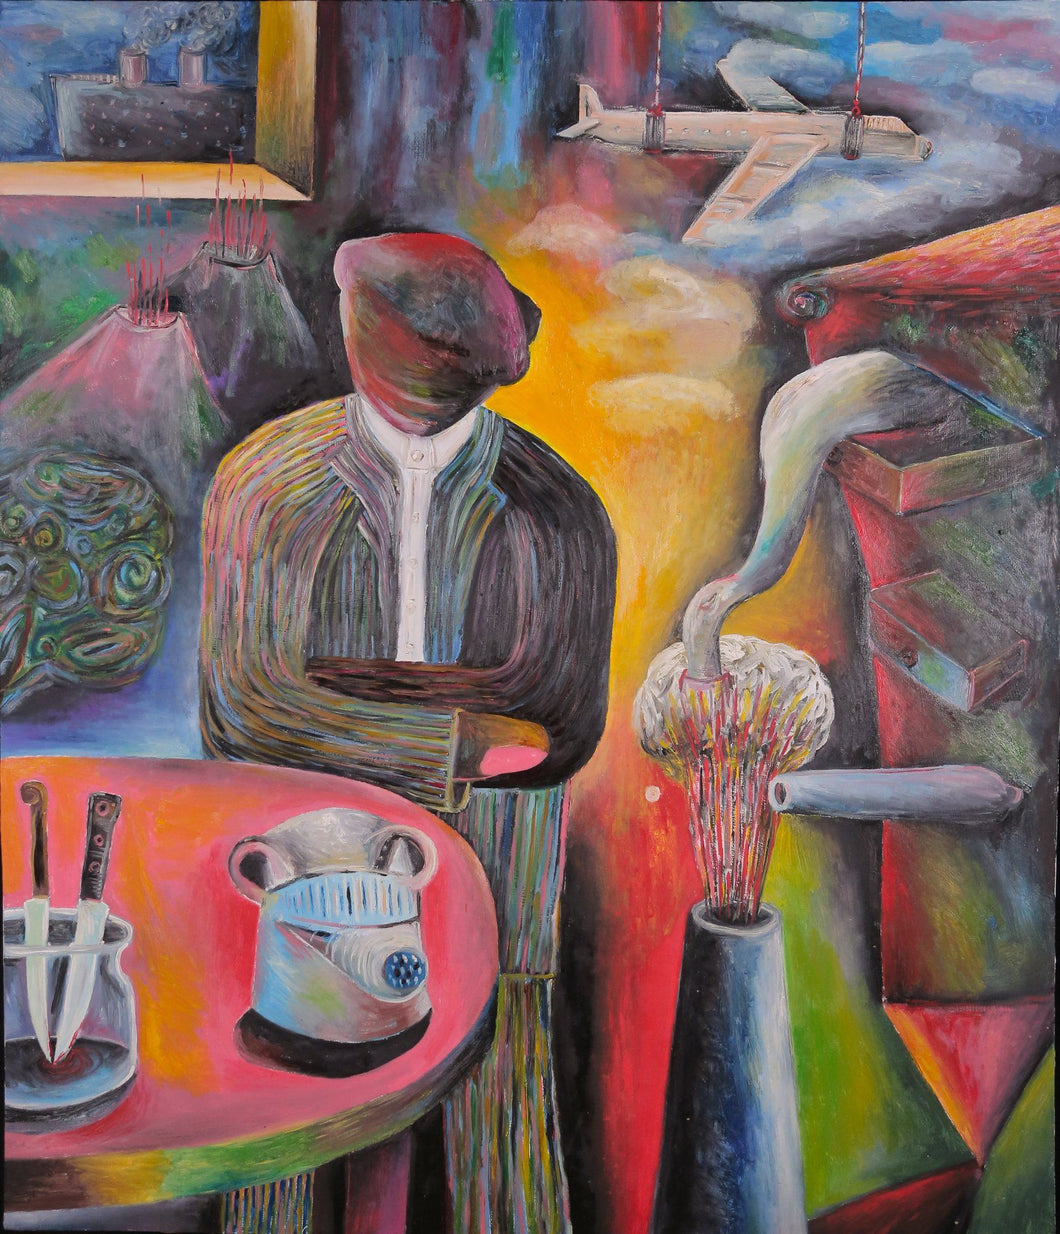 The End of Freedom by Szilárd Szilágyi, Painting at Art Acacia Gallery & Advisory